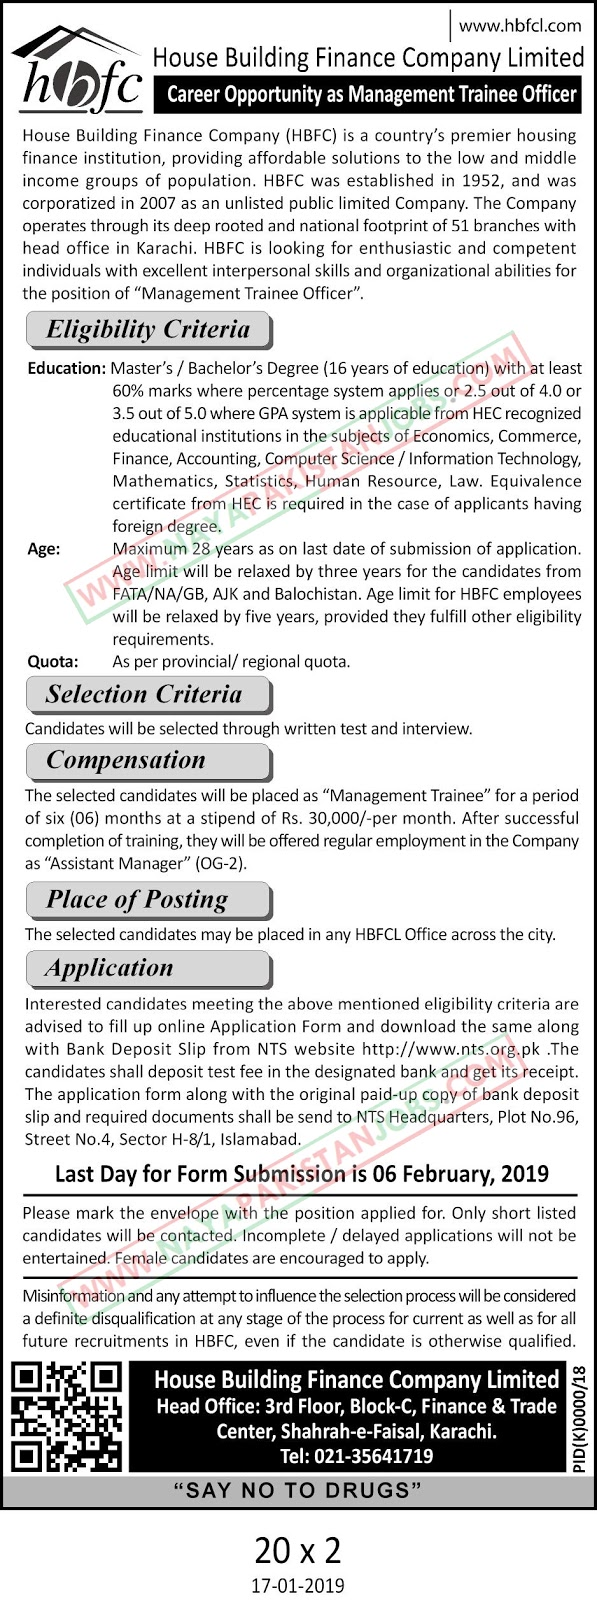 HBFC Jobs 2019, House Building Finance Company HBFC Jobs 2019 Feb | NTS Application form